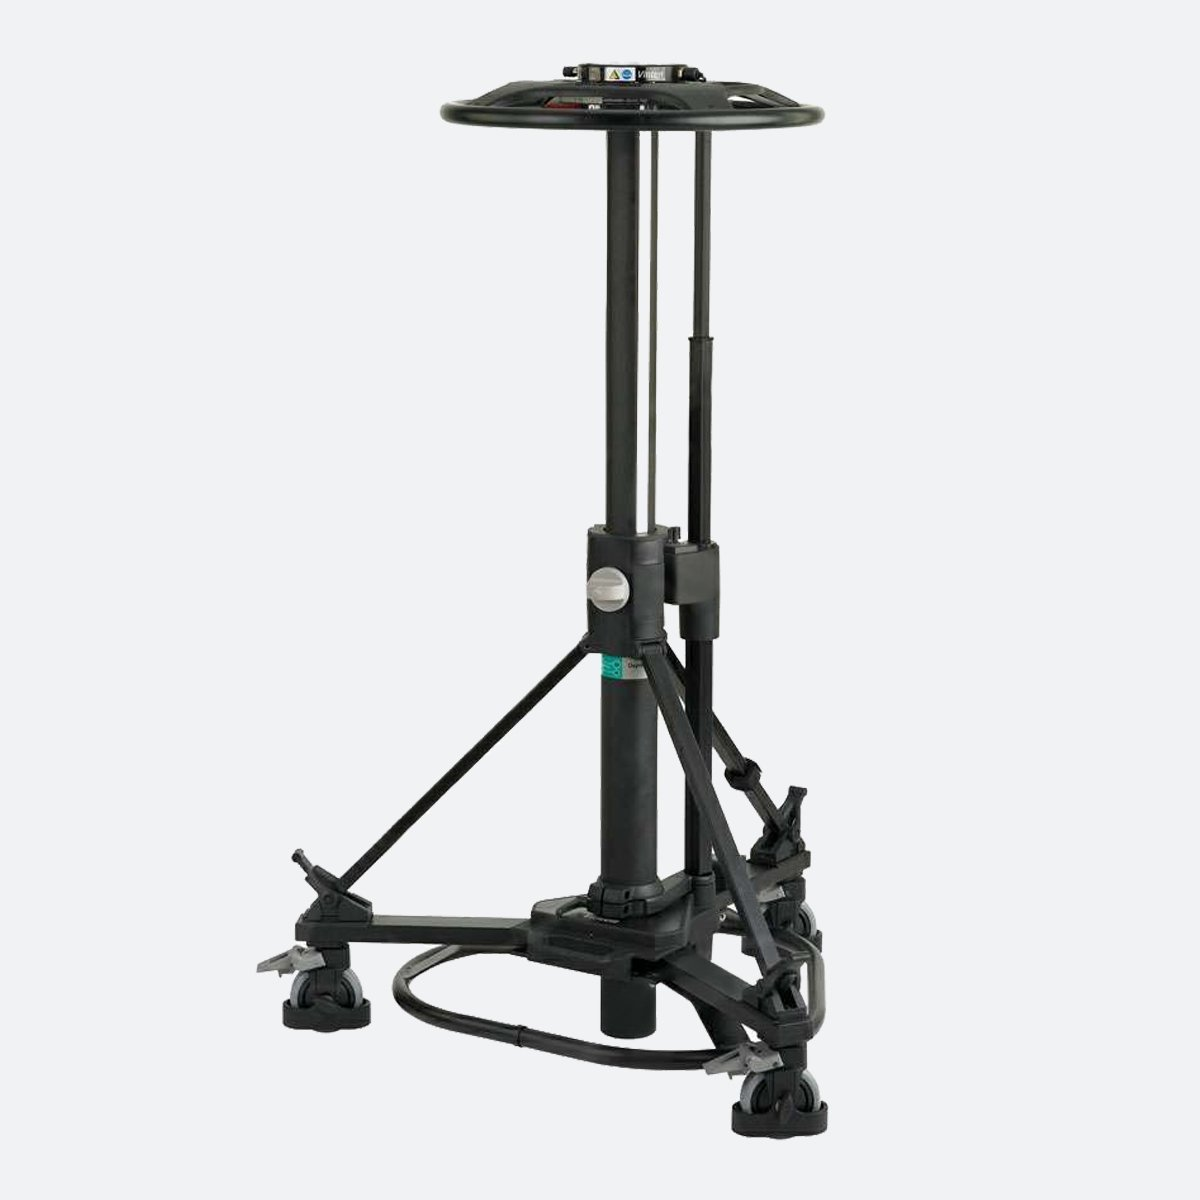 Vinten Osprey Light Pedestal